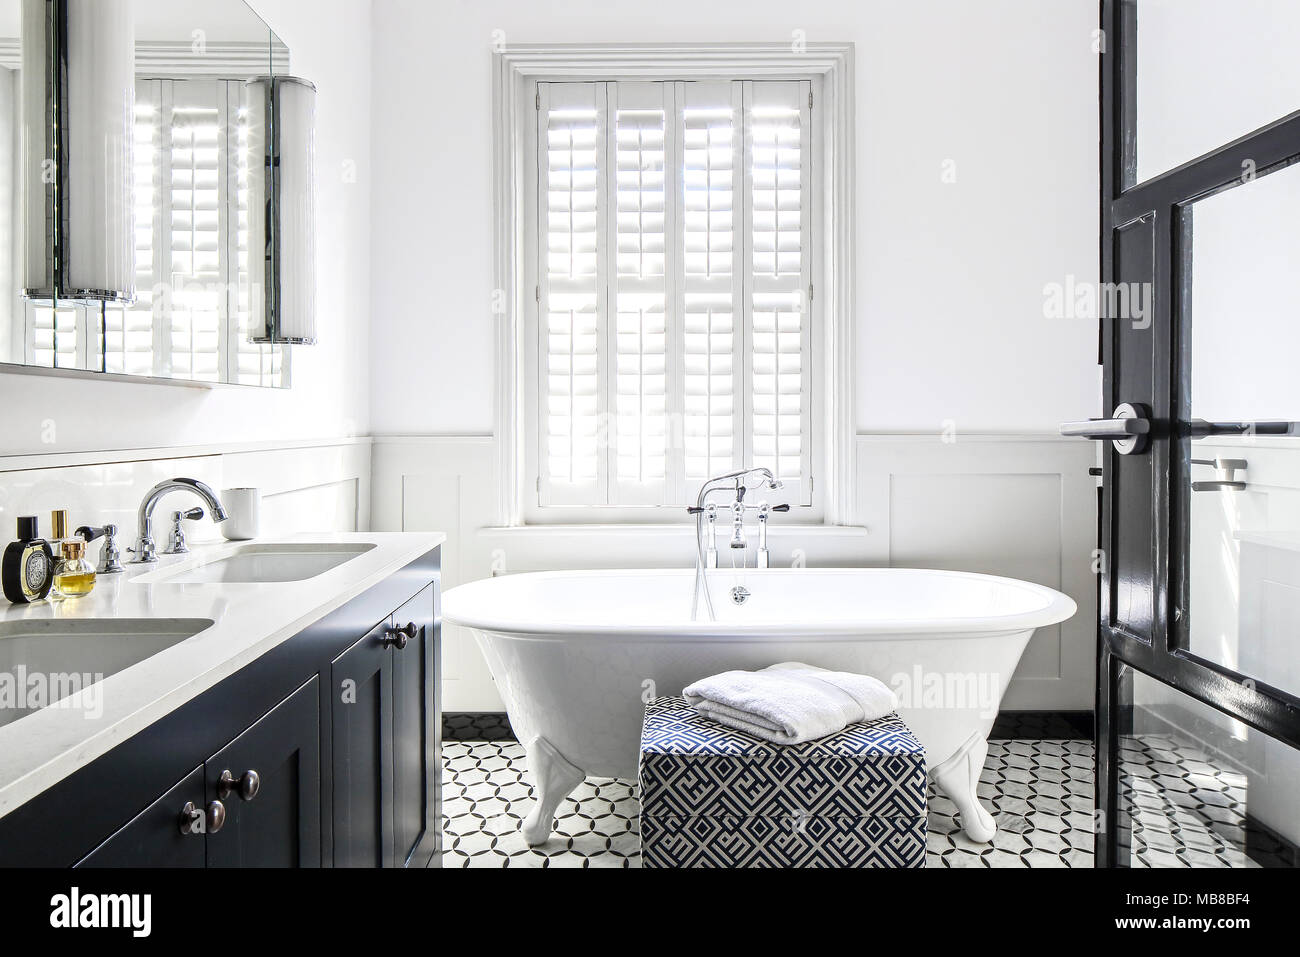 Bathroom with tiled floor and old fashioned bathtub. Private ...